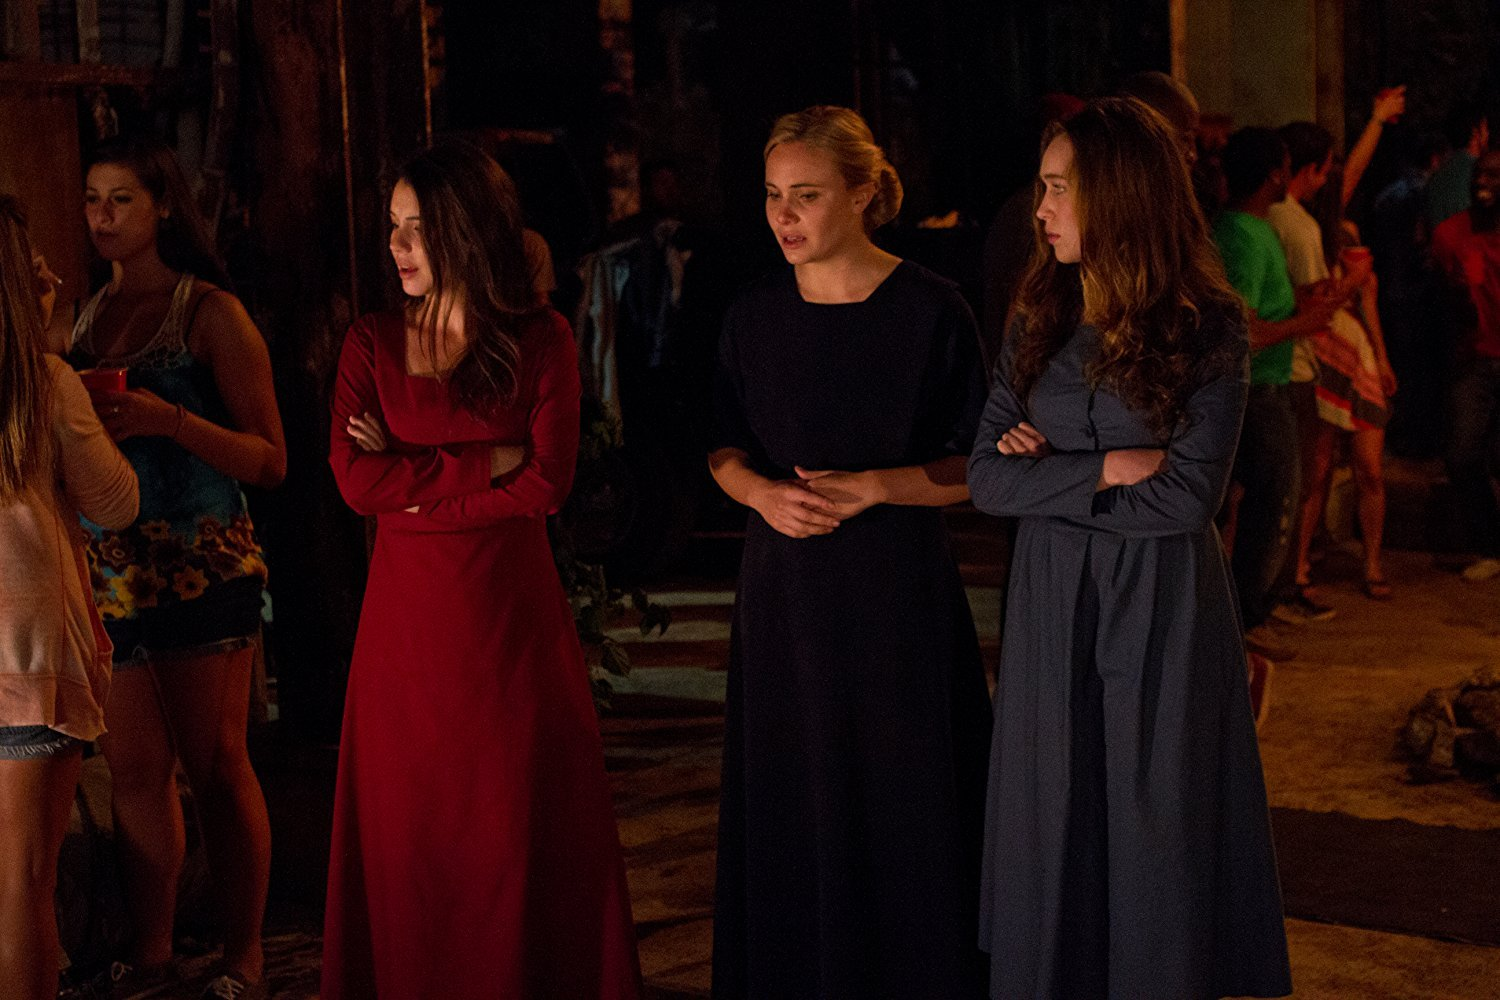 Amish girls at the party. Adelaine Kane (in a red dress) as Ruth and Alycia Debnam-Carey (in a blue dress) as Mary